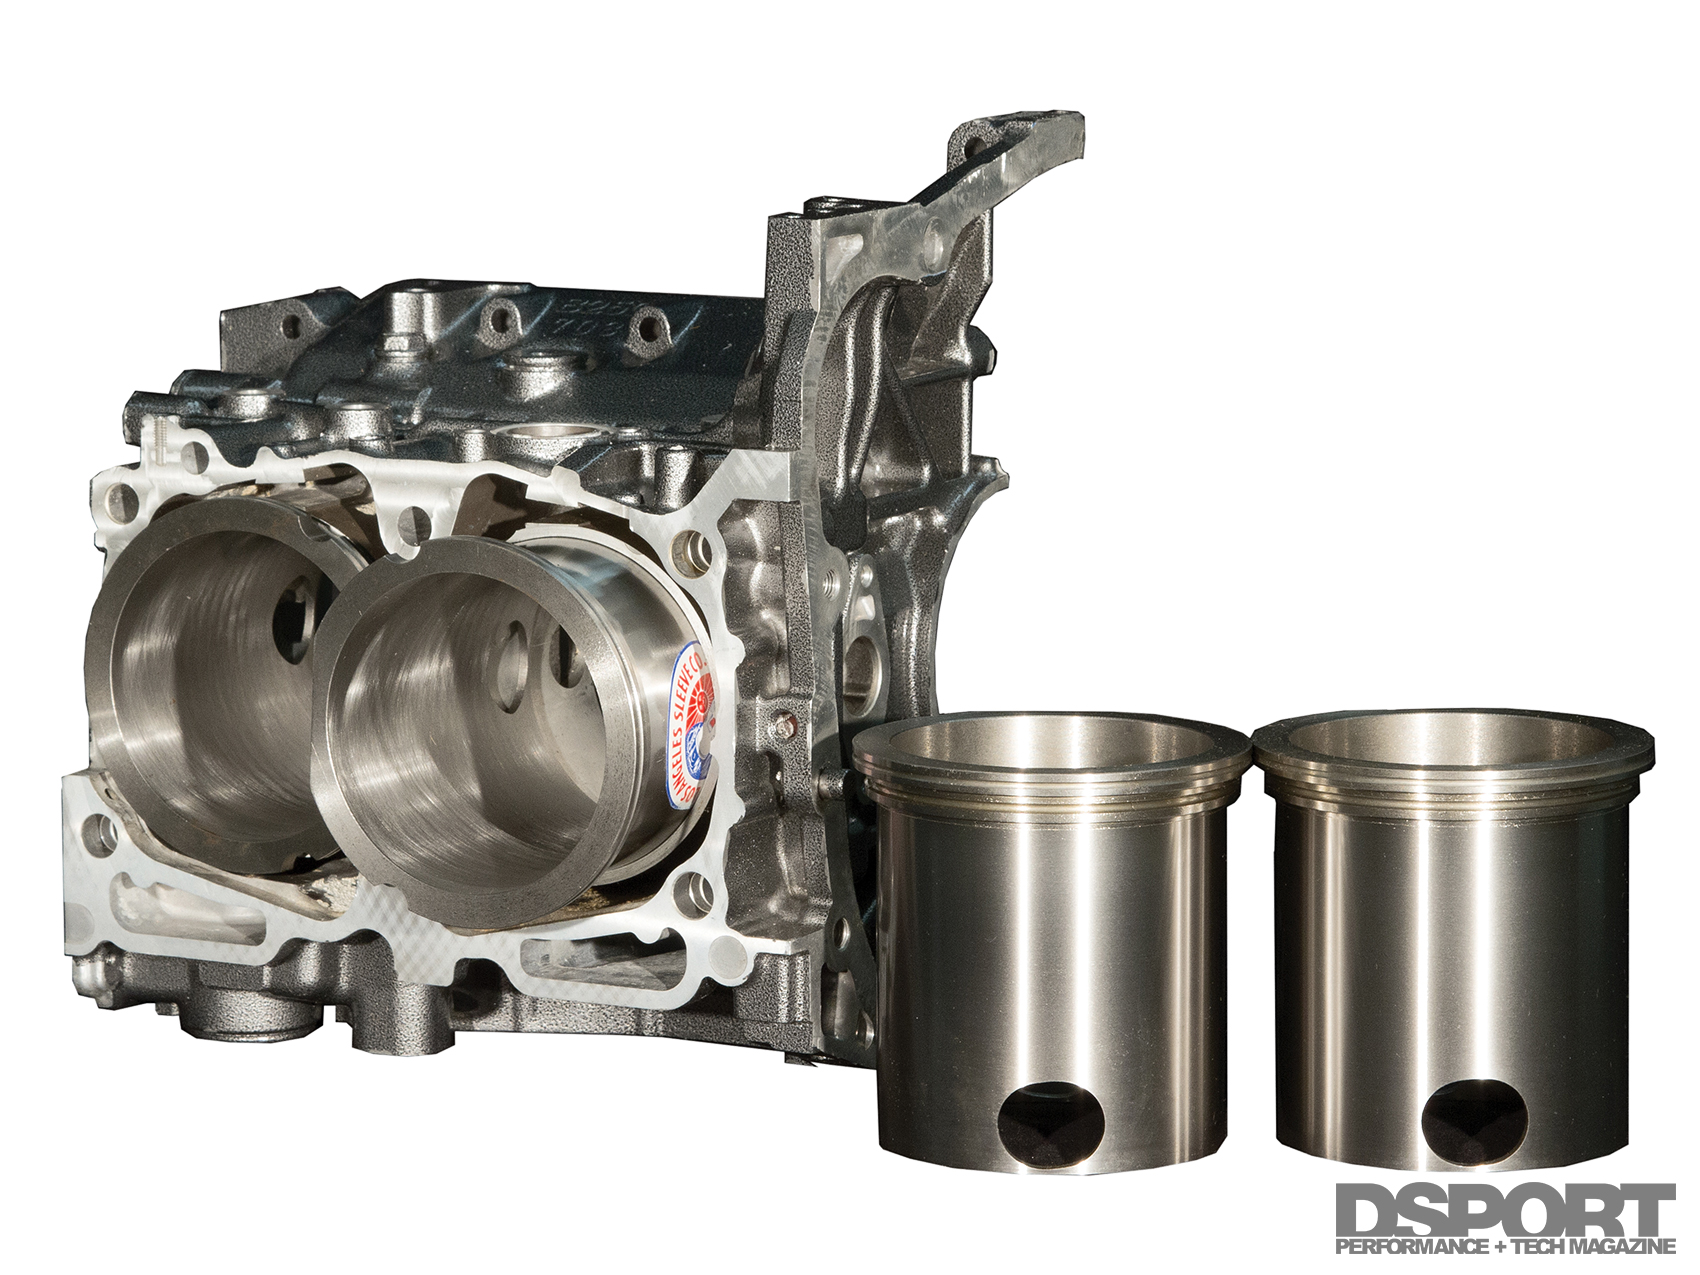 Subaru Ej257 Bottom End Breakdown Dsport Engine Diagram Cylinder Sleeves Offer A High Strength Repair Solution For Damaged Or Worn Blocks They Can Be Used To Simply Fortify The Further